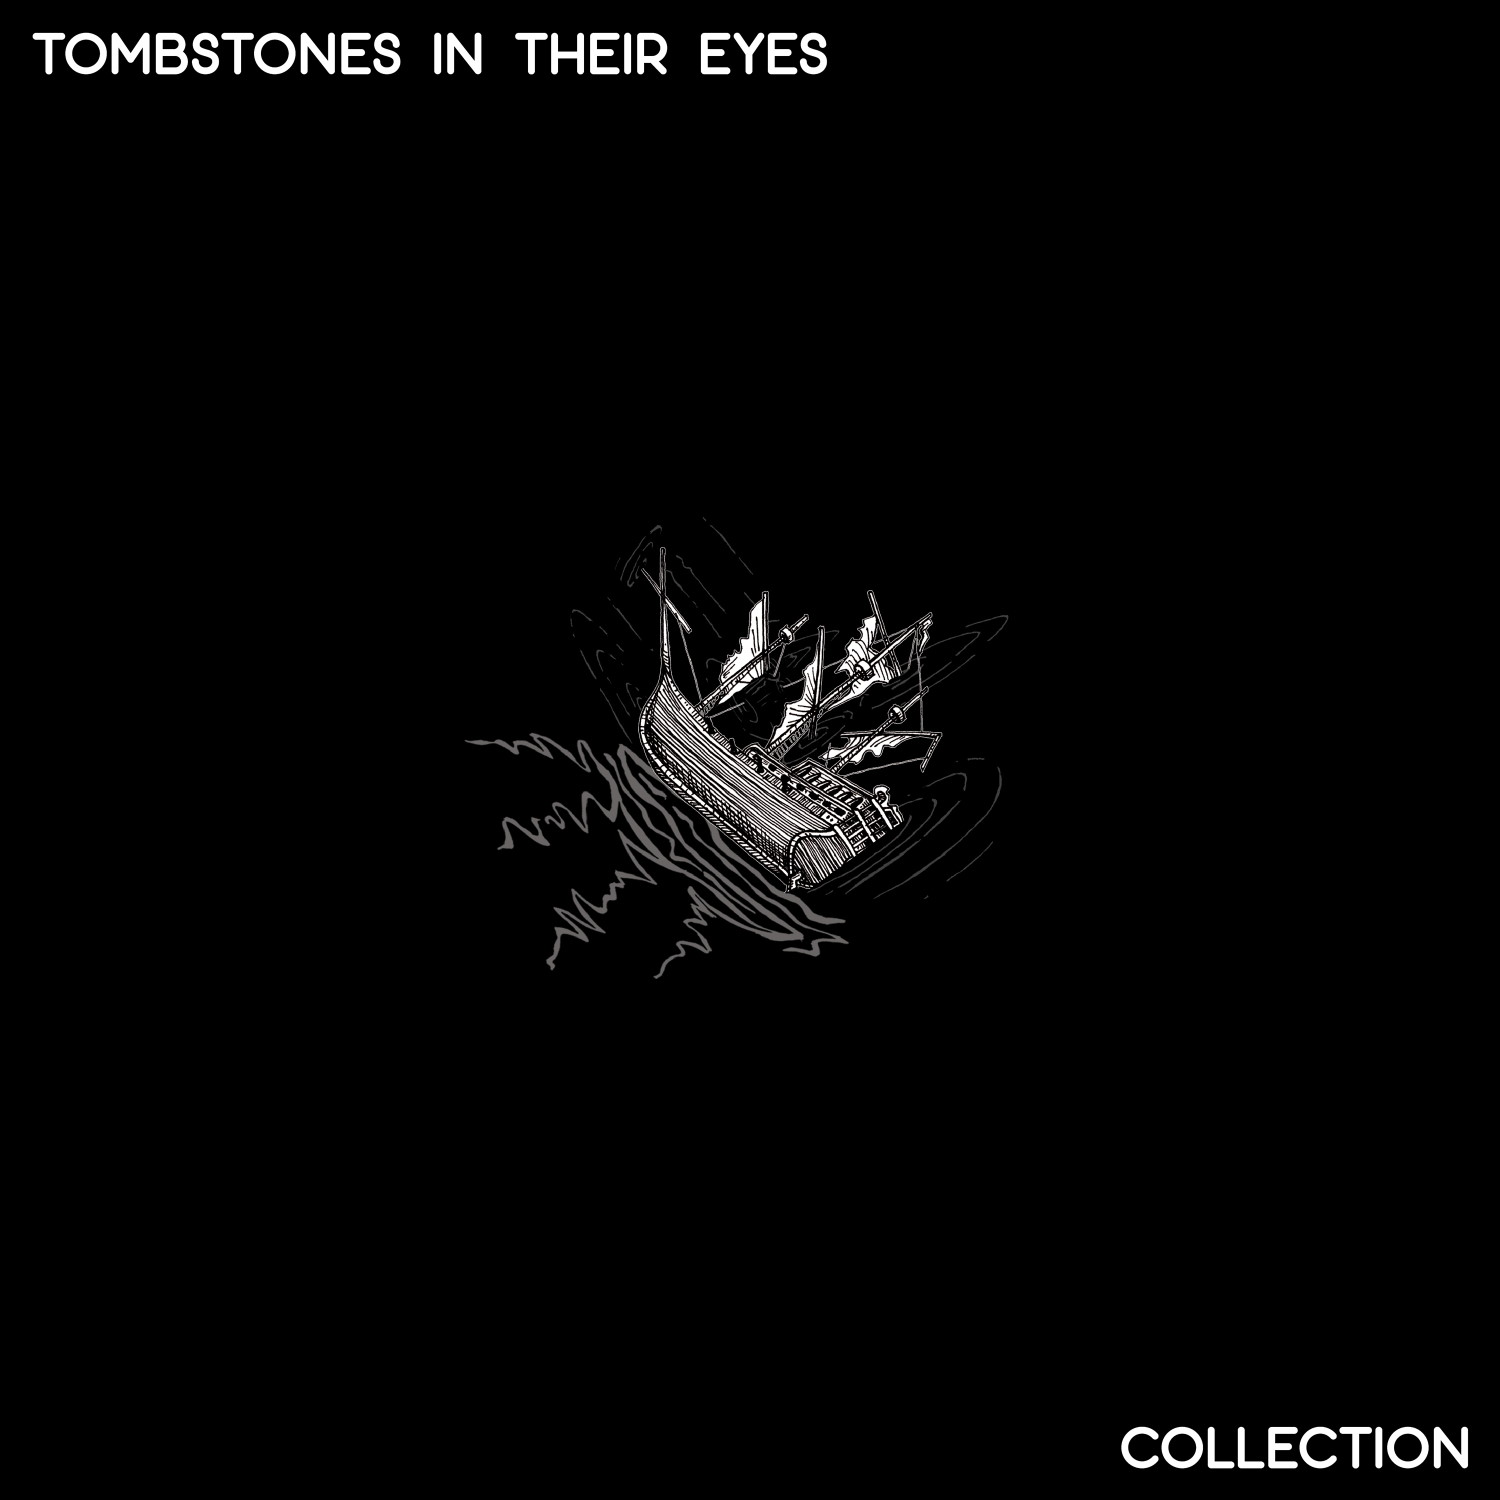 Tombstones In Their Eyes (album cover)